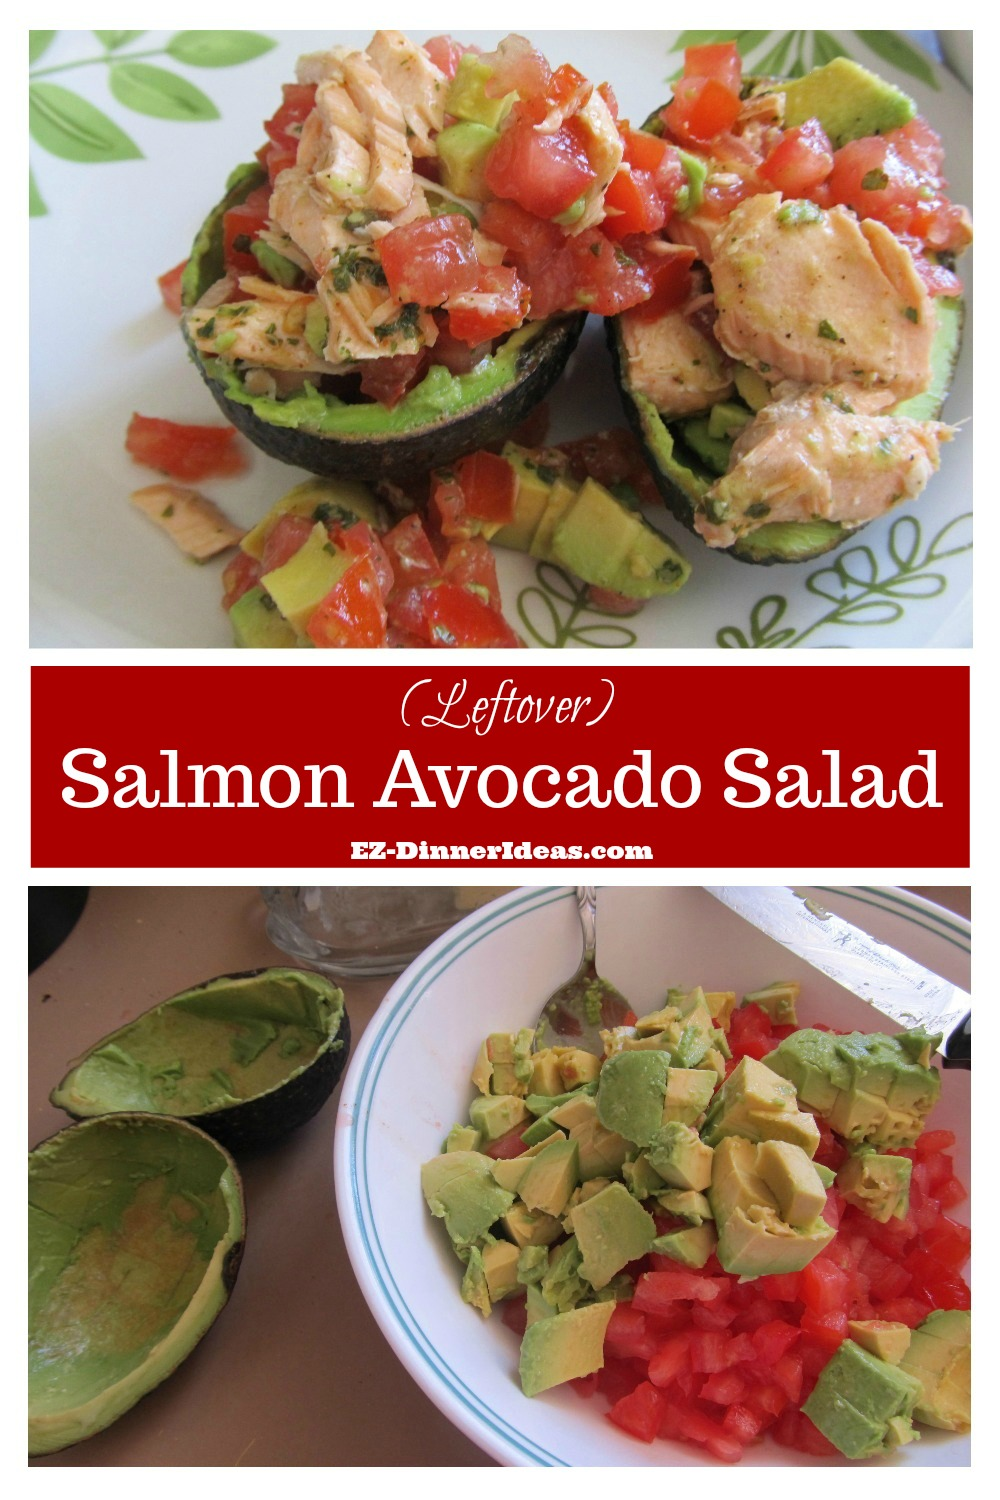 Quick and easy no-cook recipe makes healthy eating very manageable.  Assemble and dive in.  That's how simple this salmon avocado salad is.  It's beautiful and yummy.